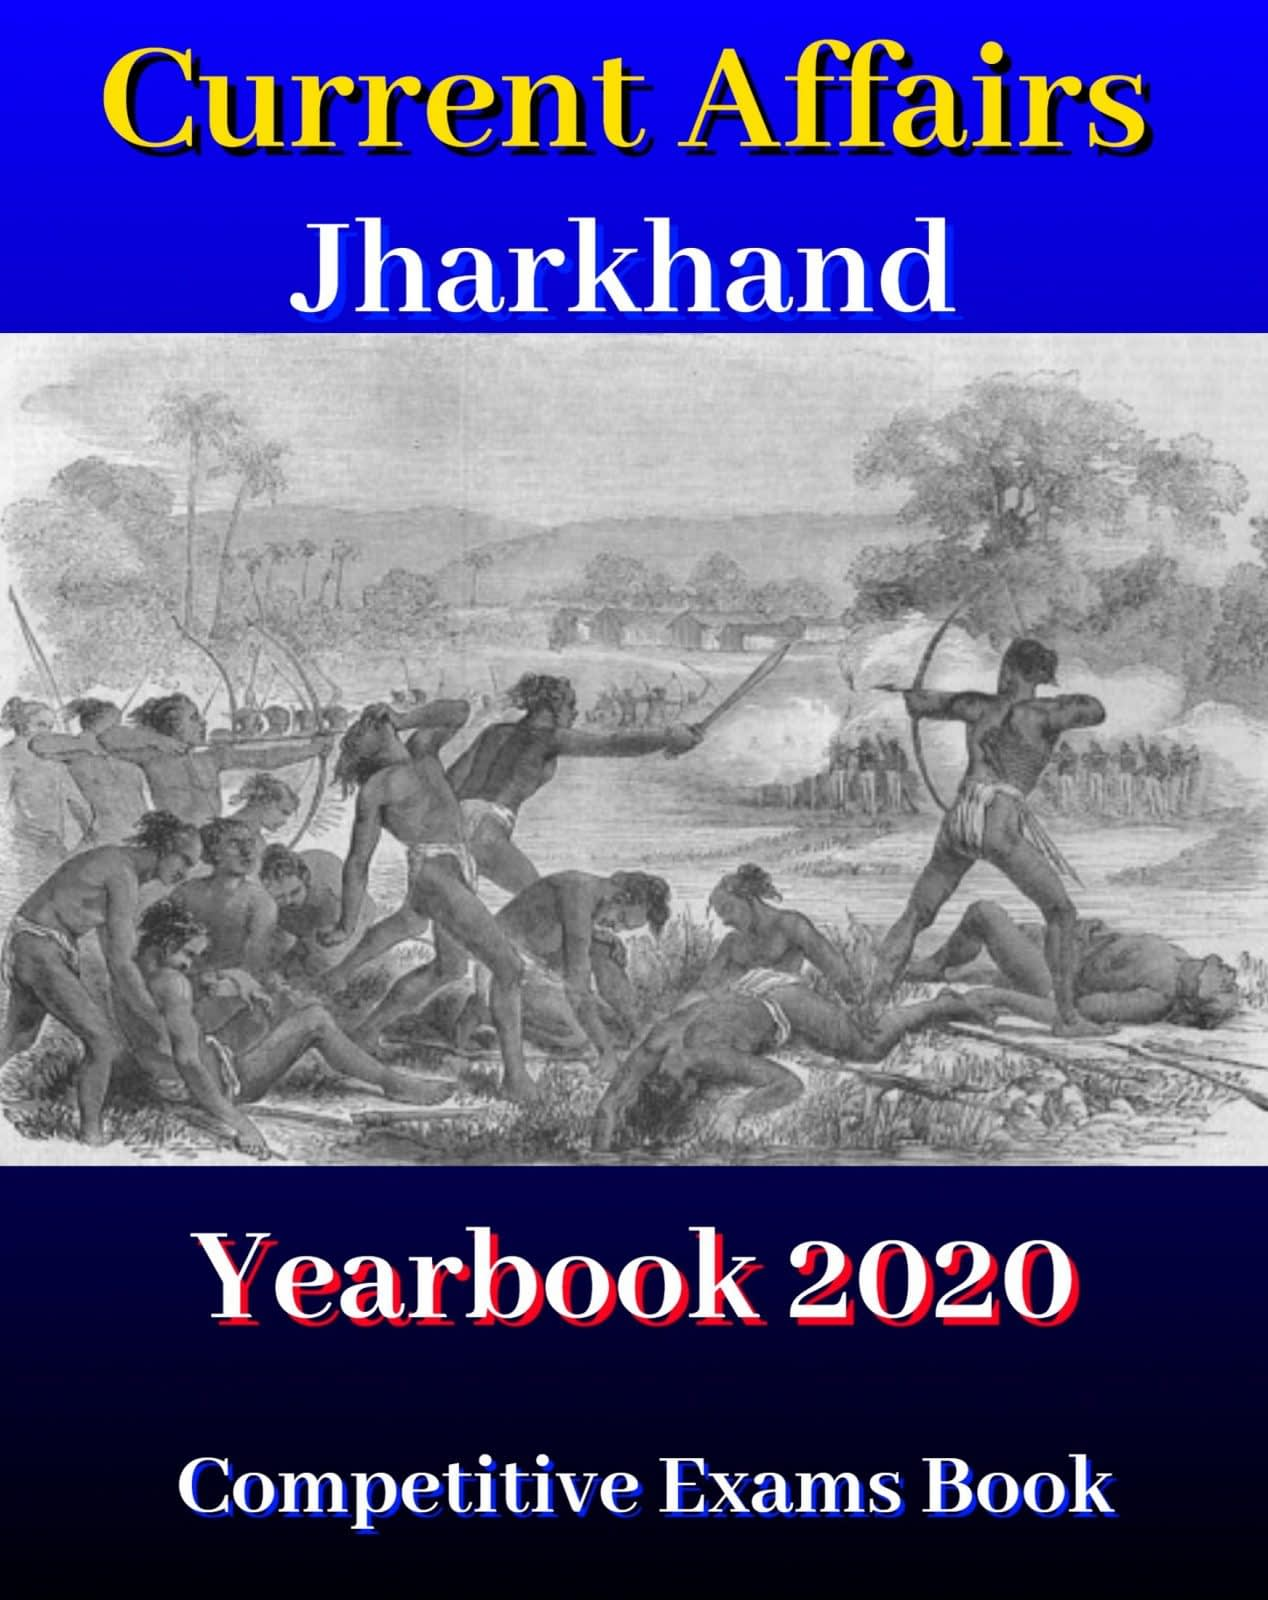 Jharkhand General Knowledge Yearbook 2020